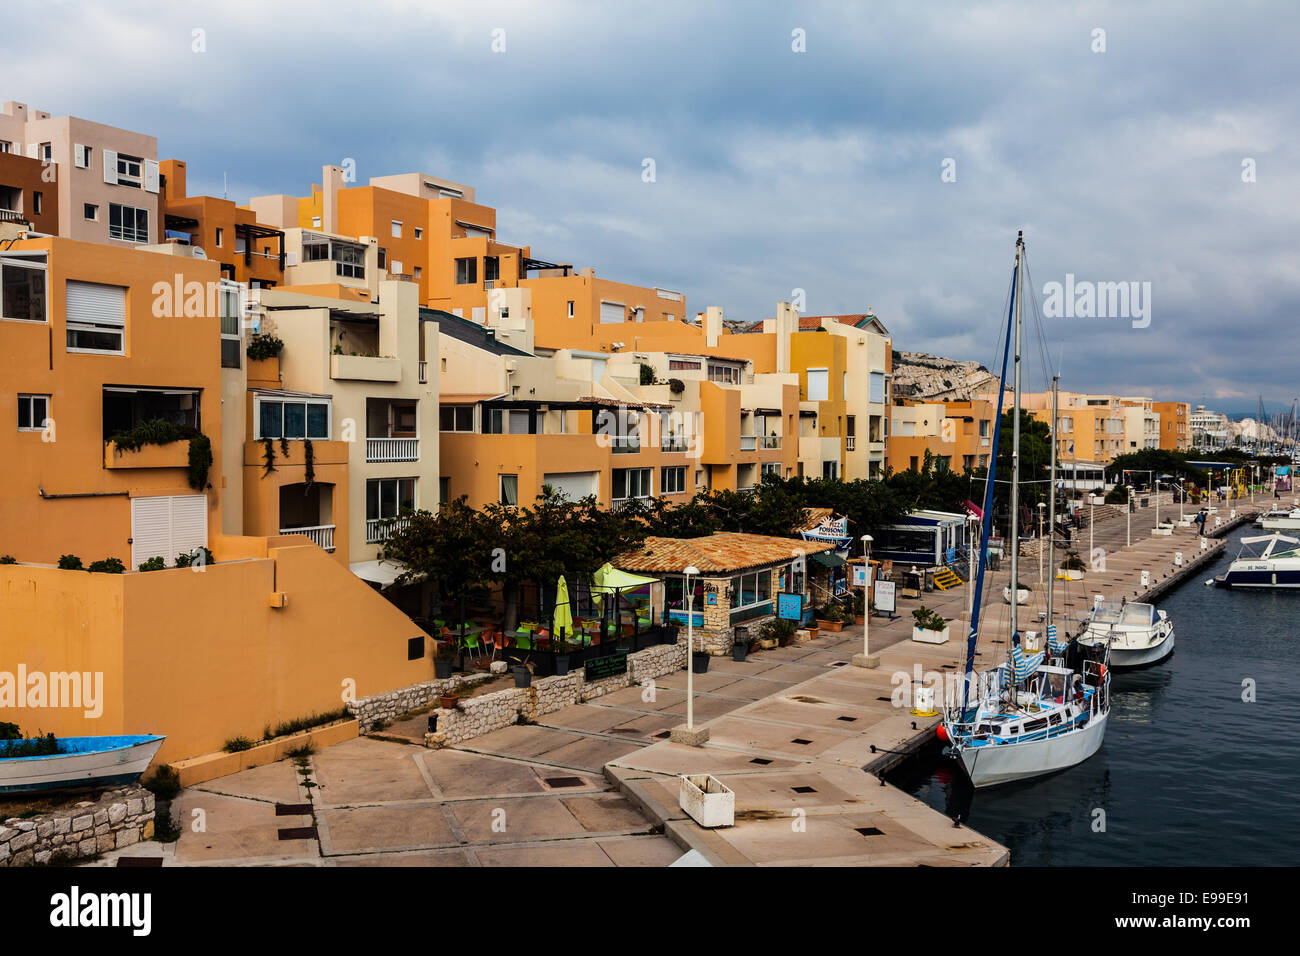 Overview of Port Frioul on the island of Ratonneau, near Marseille. - Stock Image